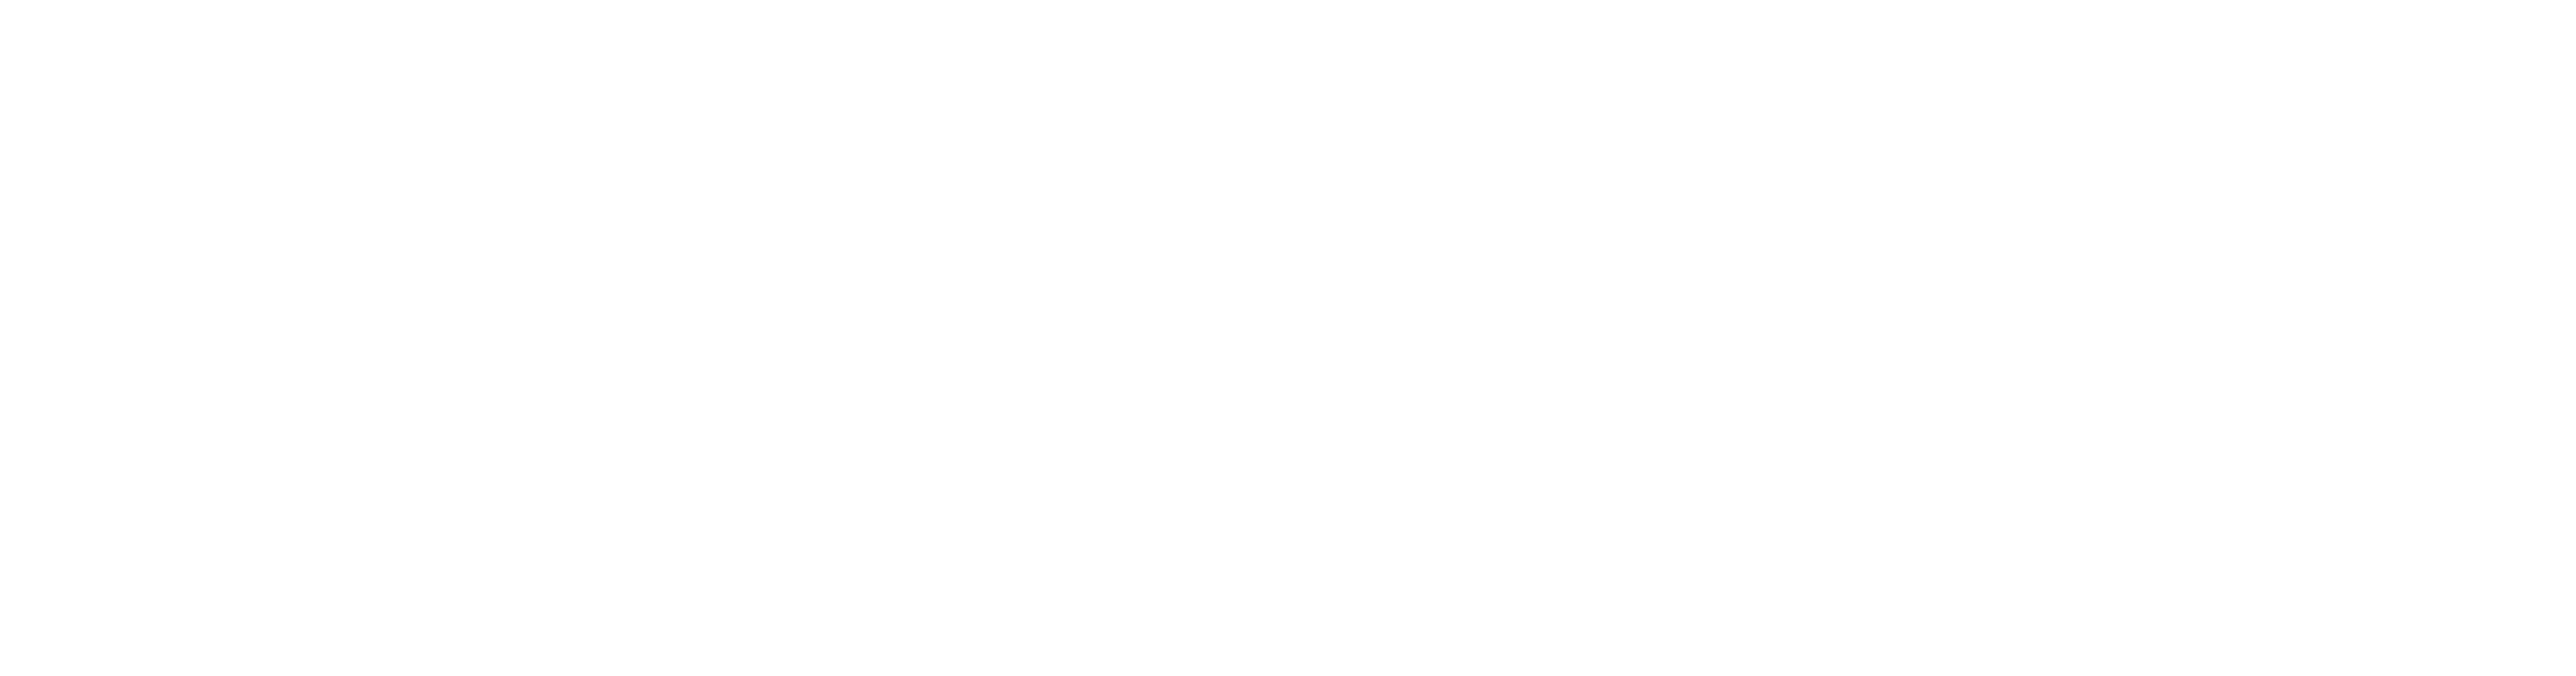 james-augusti-consulting